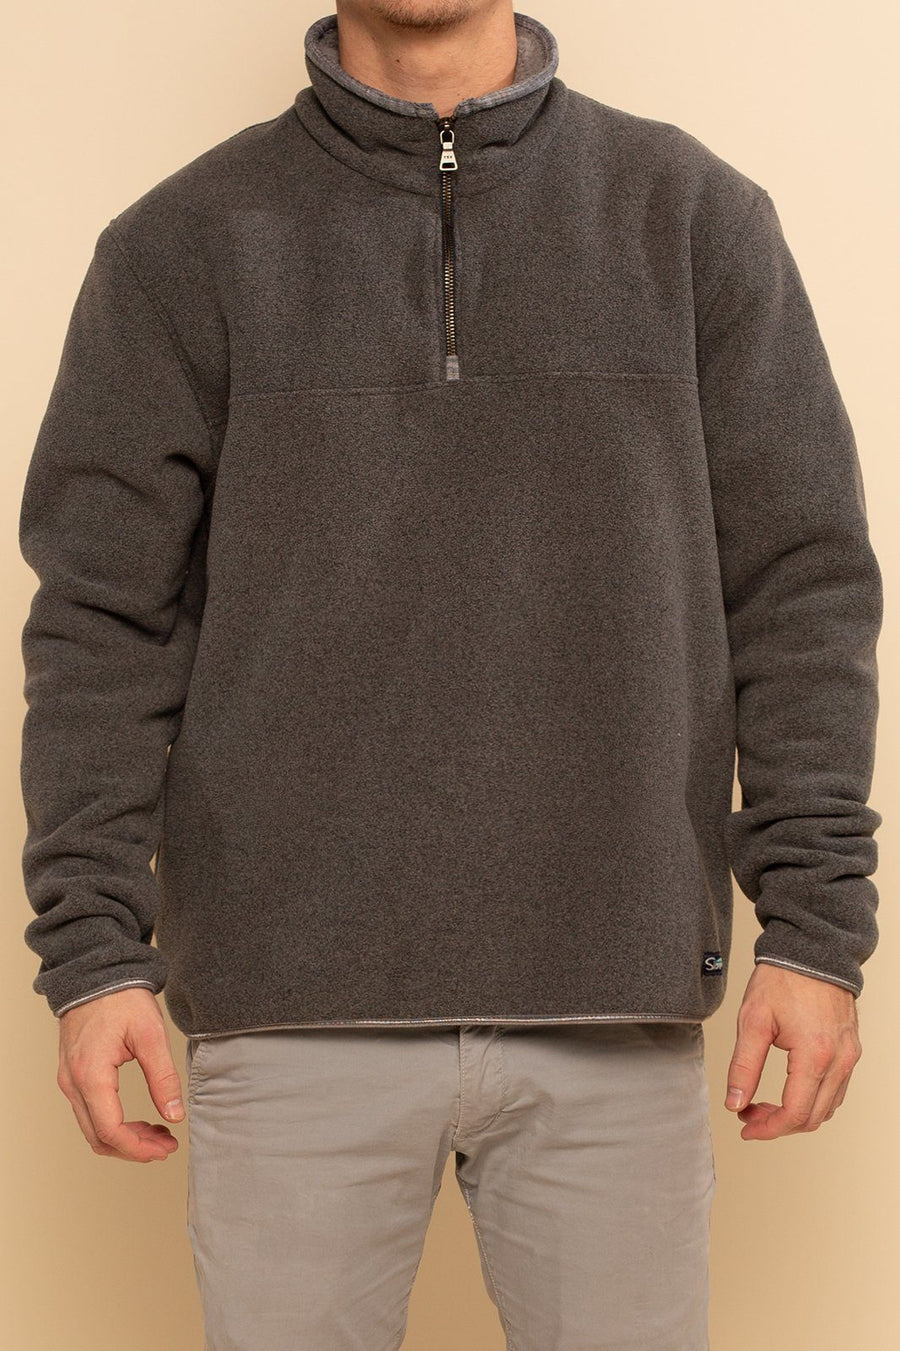 Squaw Valley Pullover - Gray - Shore